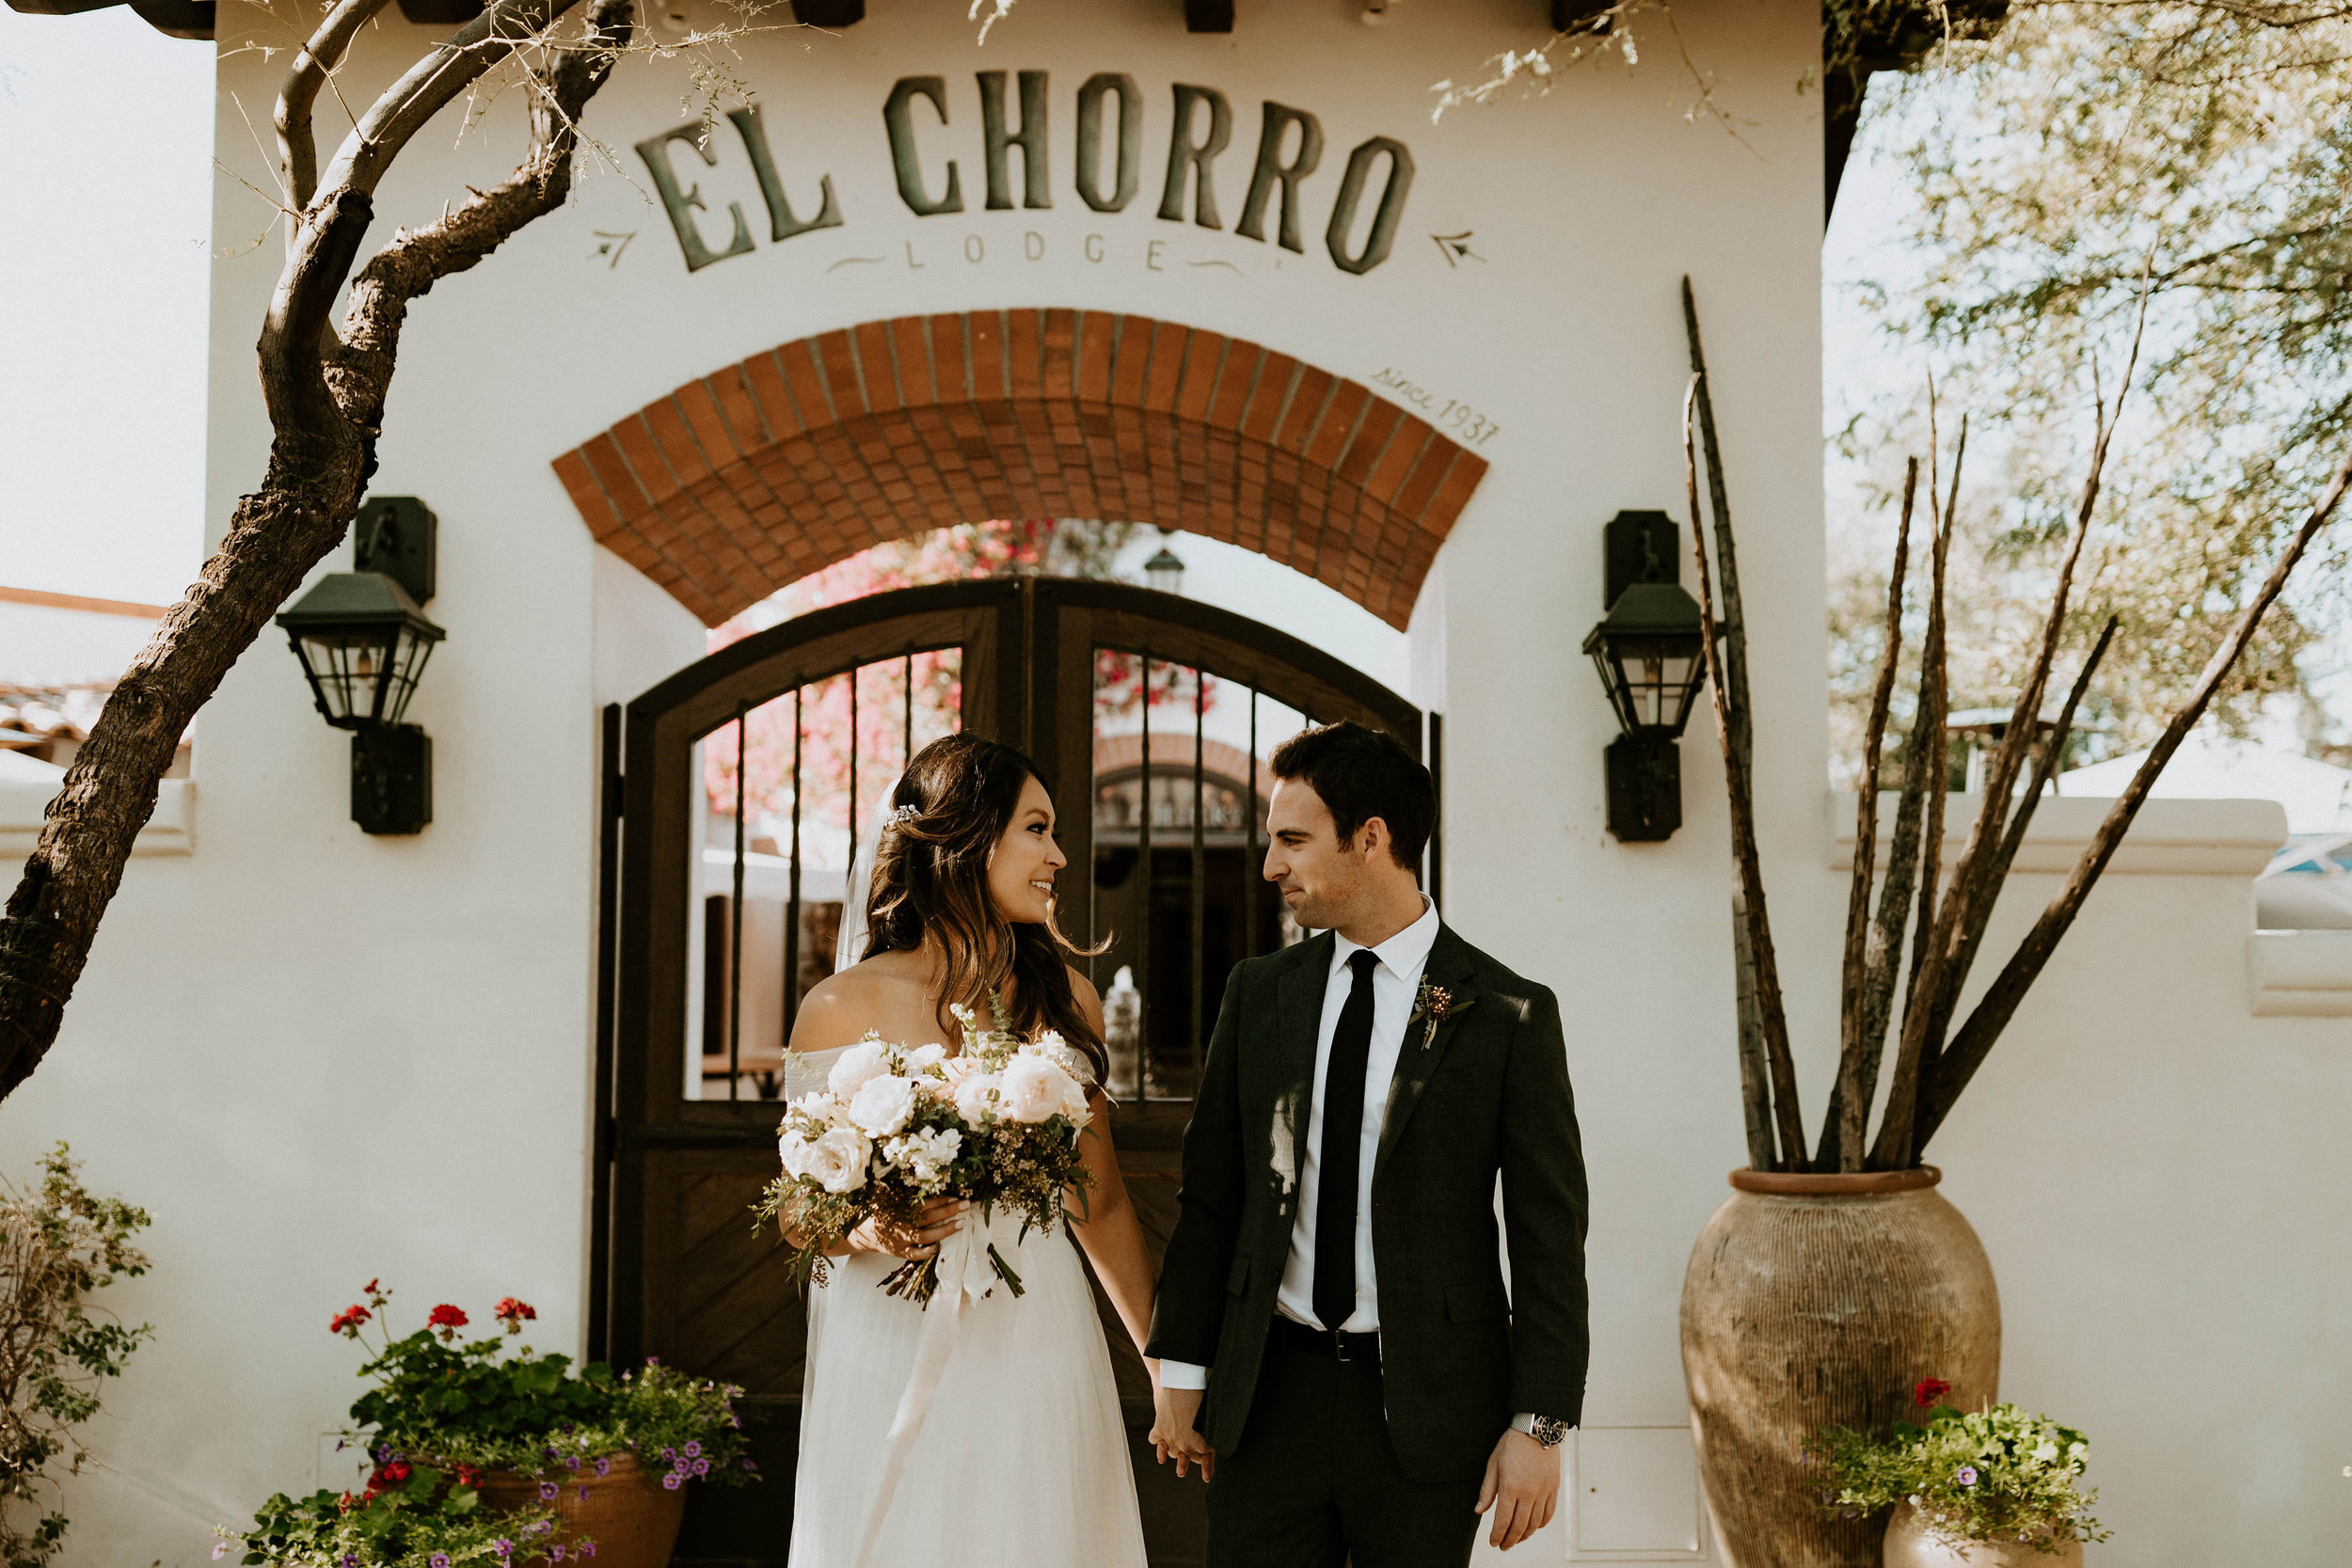 ElChorroWeddingErikaGreenePhotography31.jpg